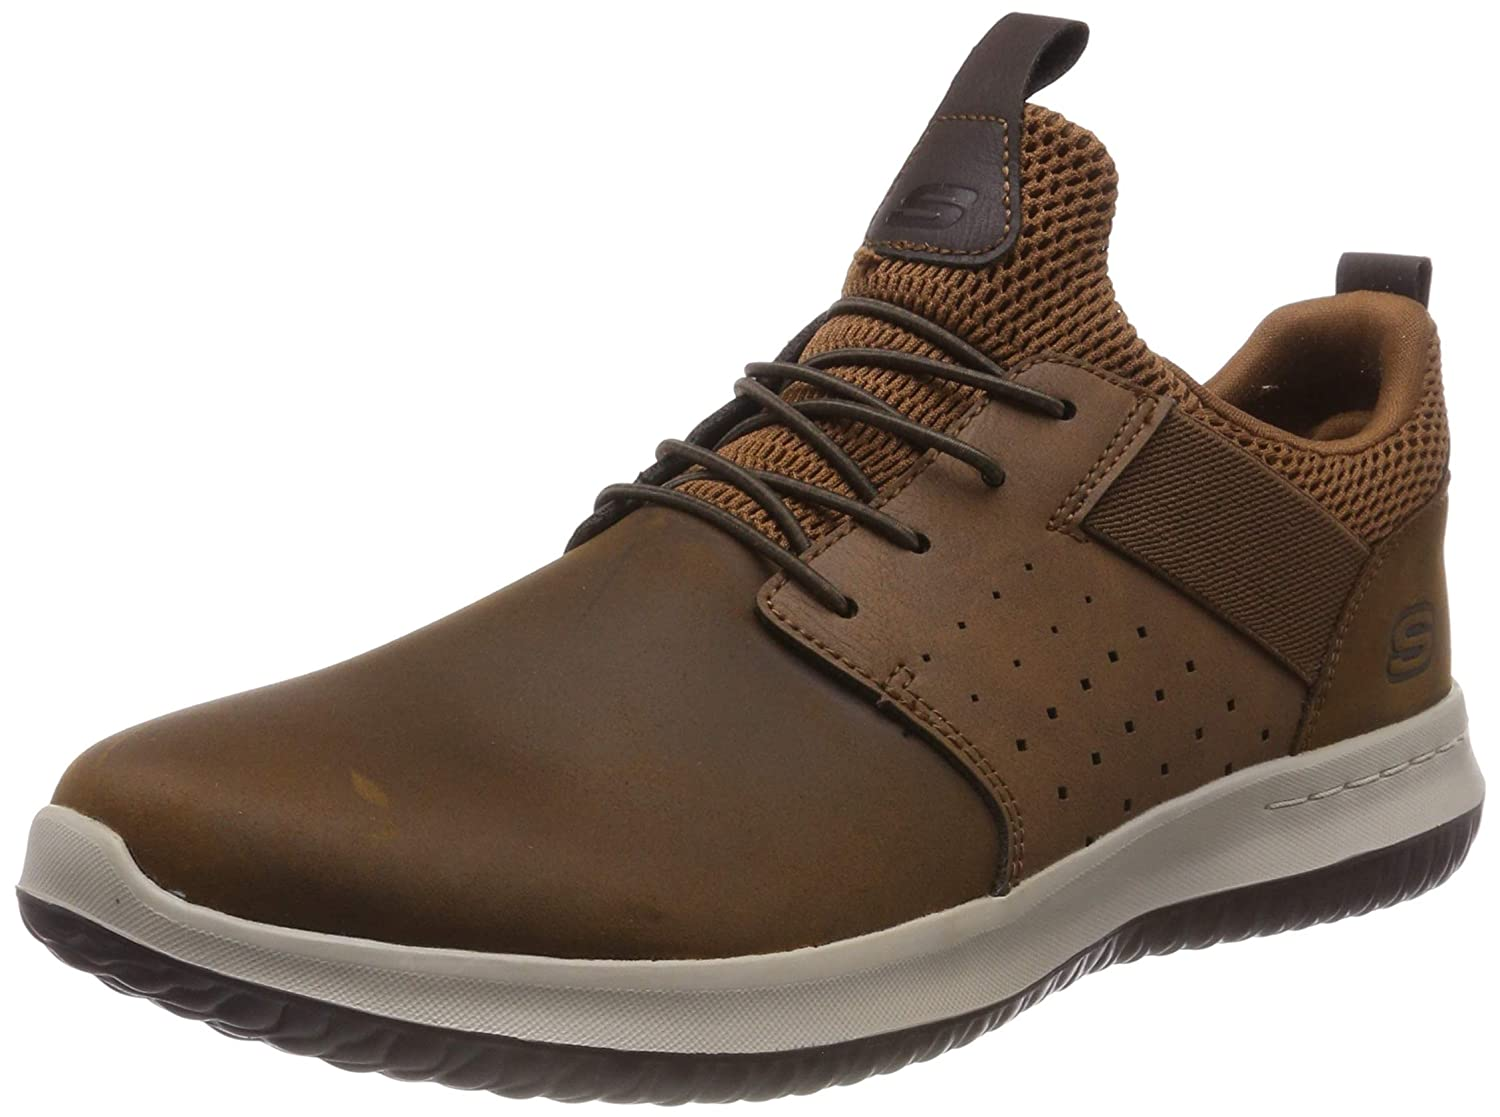 Skechers Men's Delson- Axton Slip On Trainers